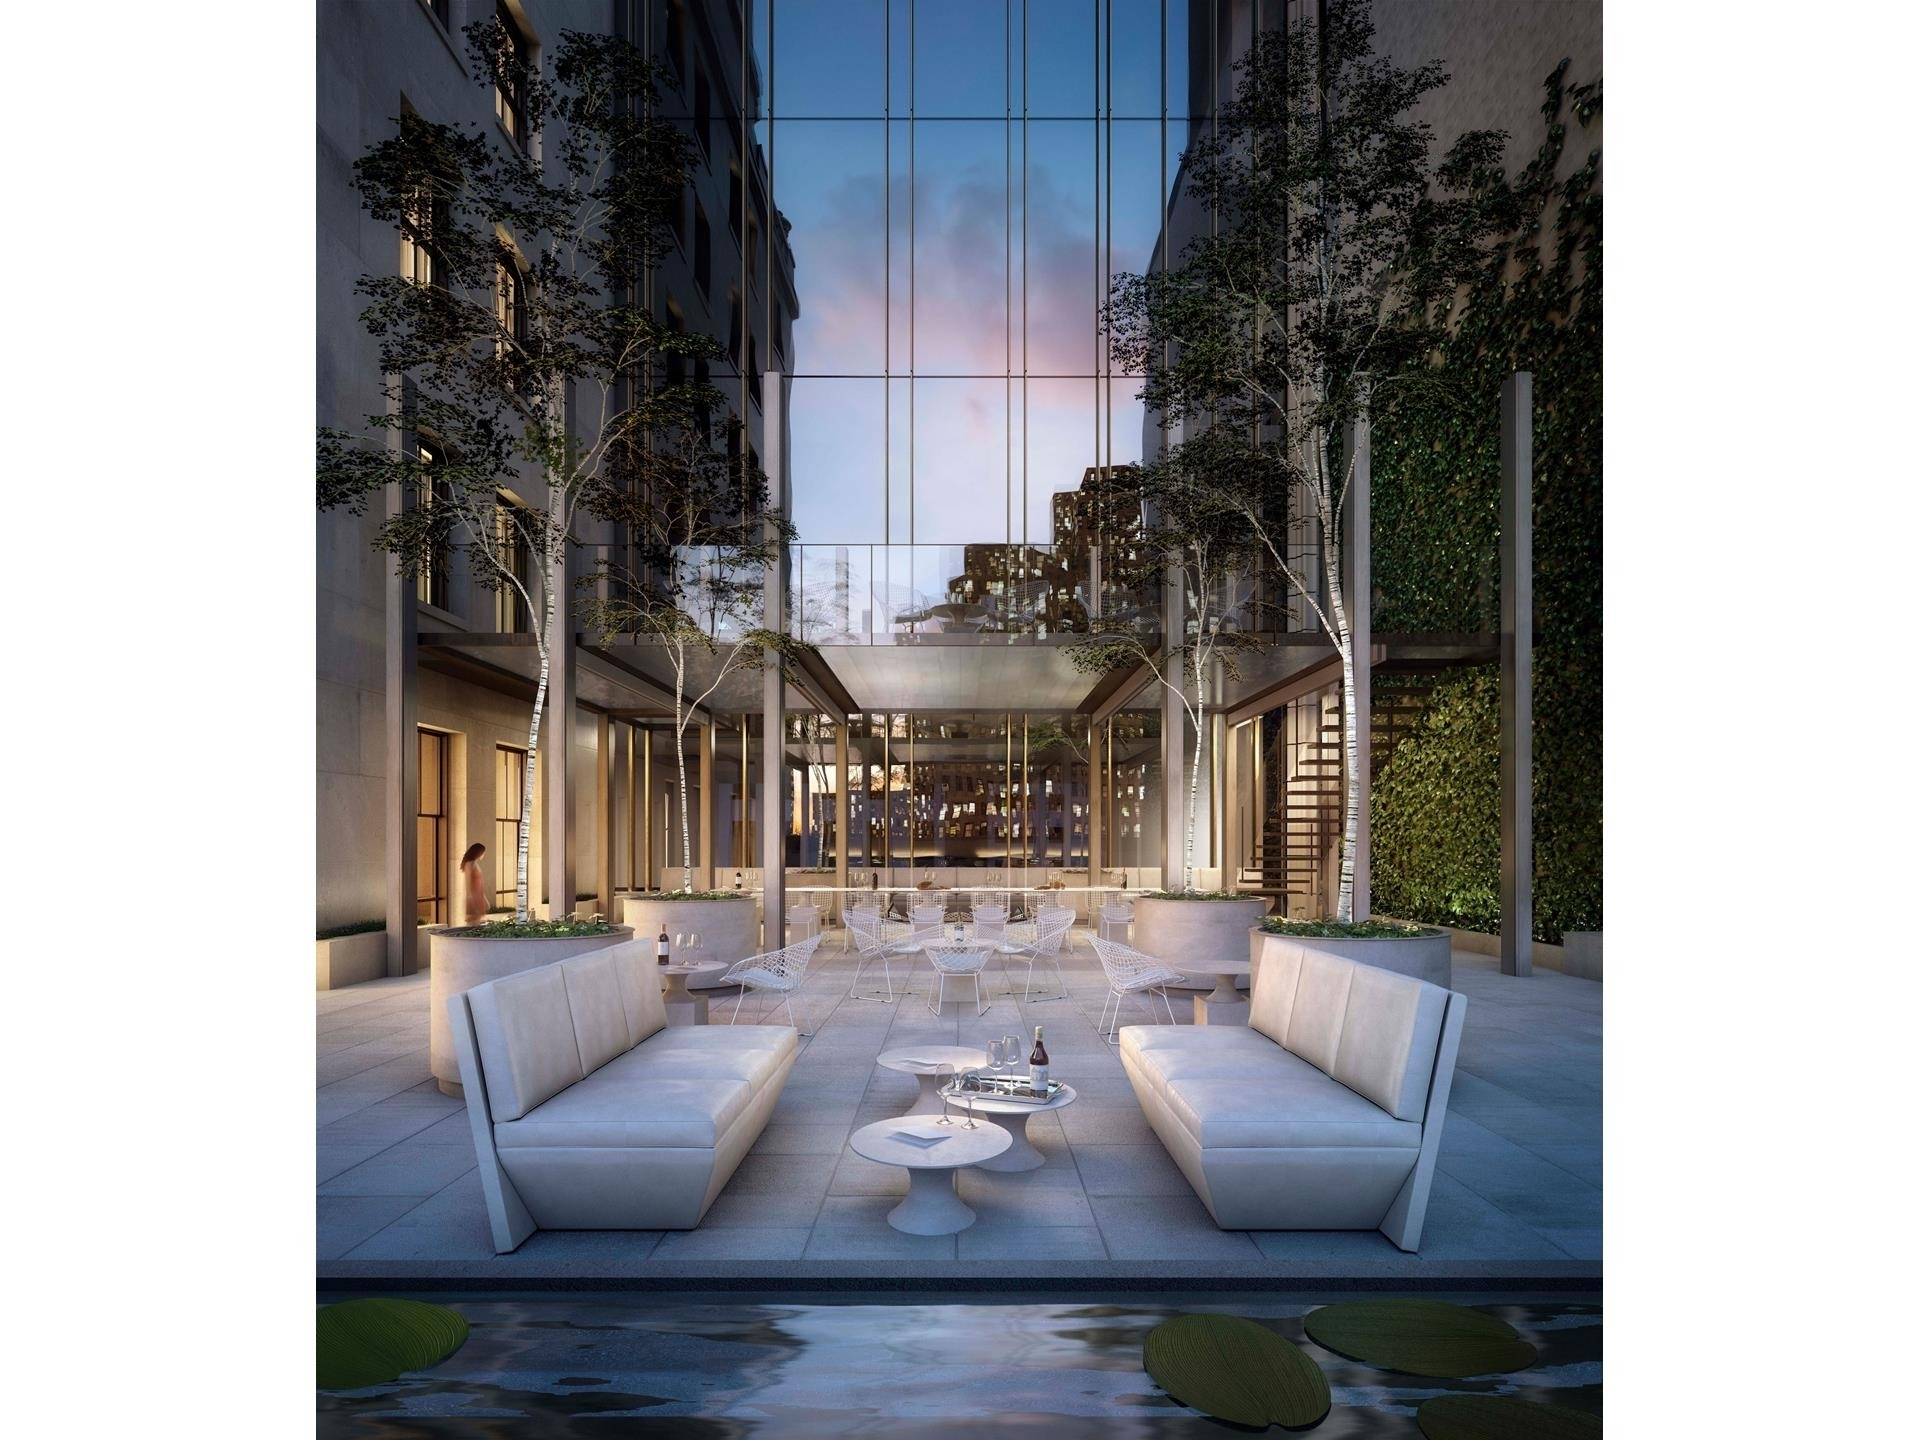 17. Condominiums for Sale at 111 W 57TH ST , 55 Midtown West, New York, NY 10019